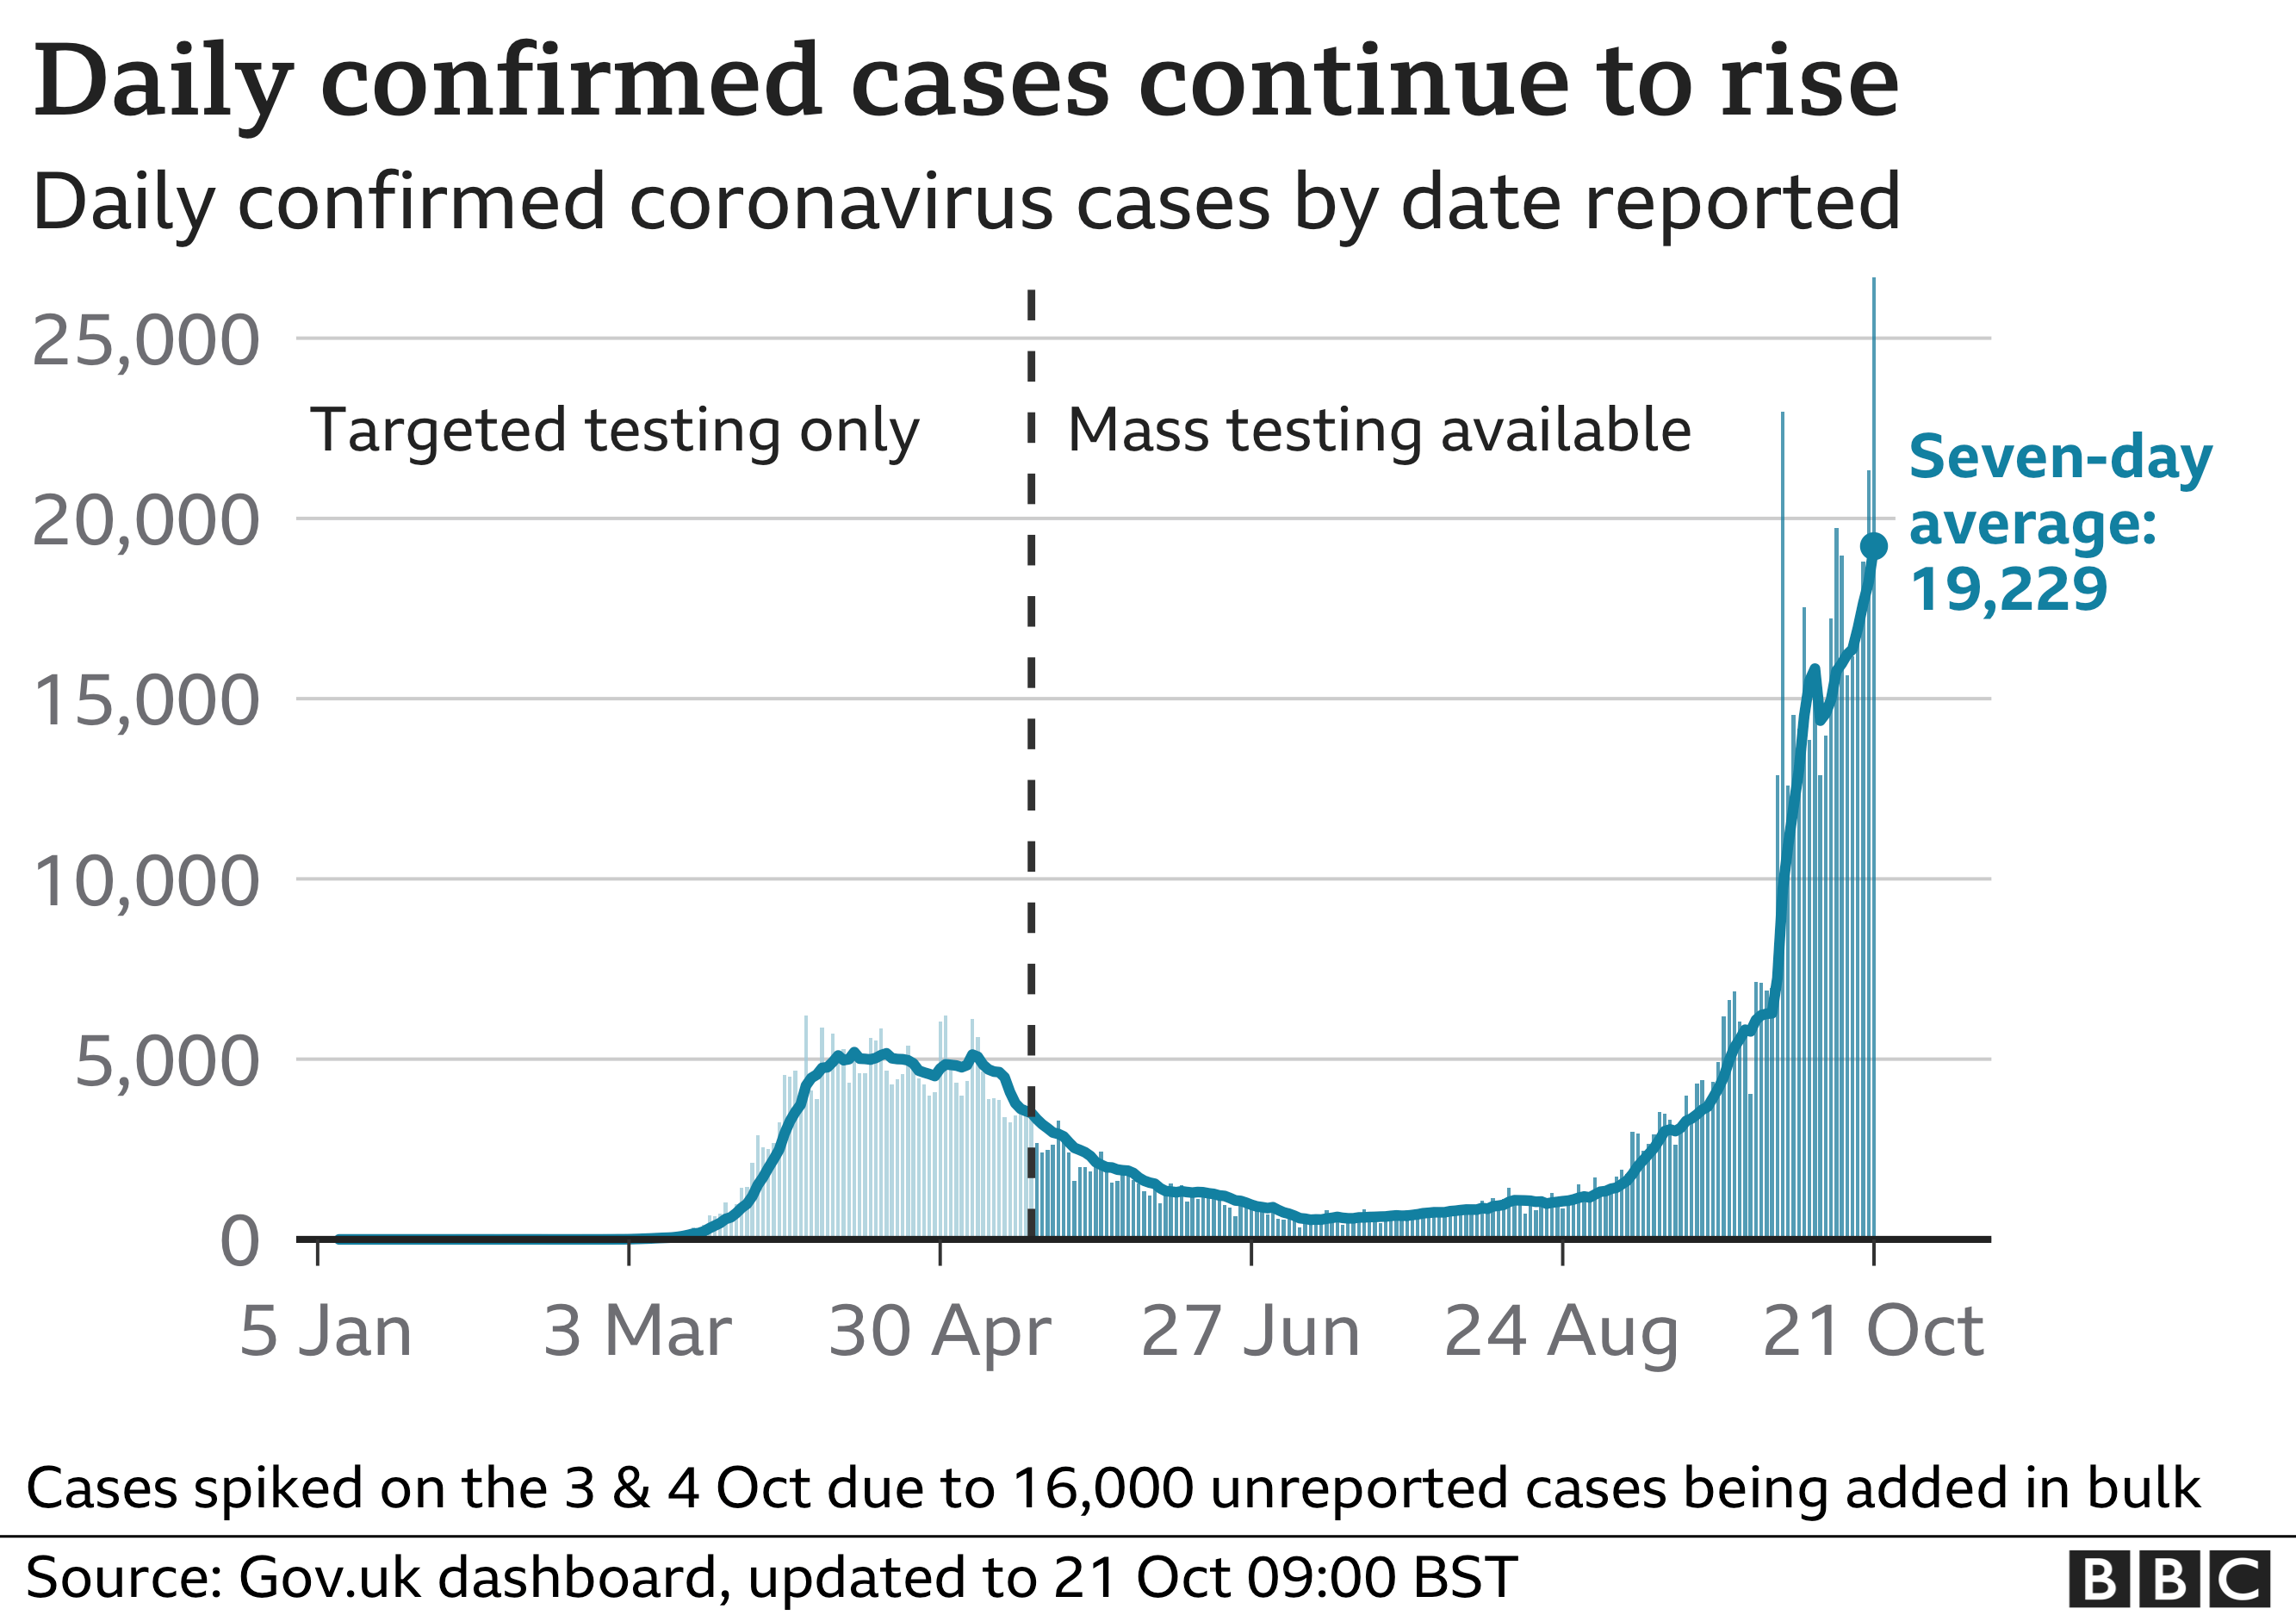 Chart shows daily confirmed cases continuing to rise